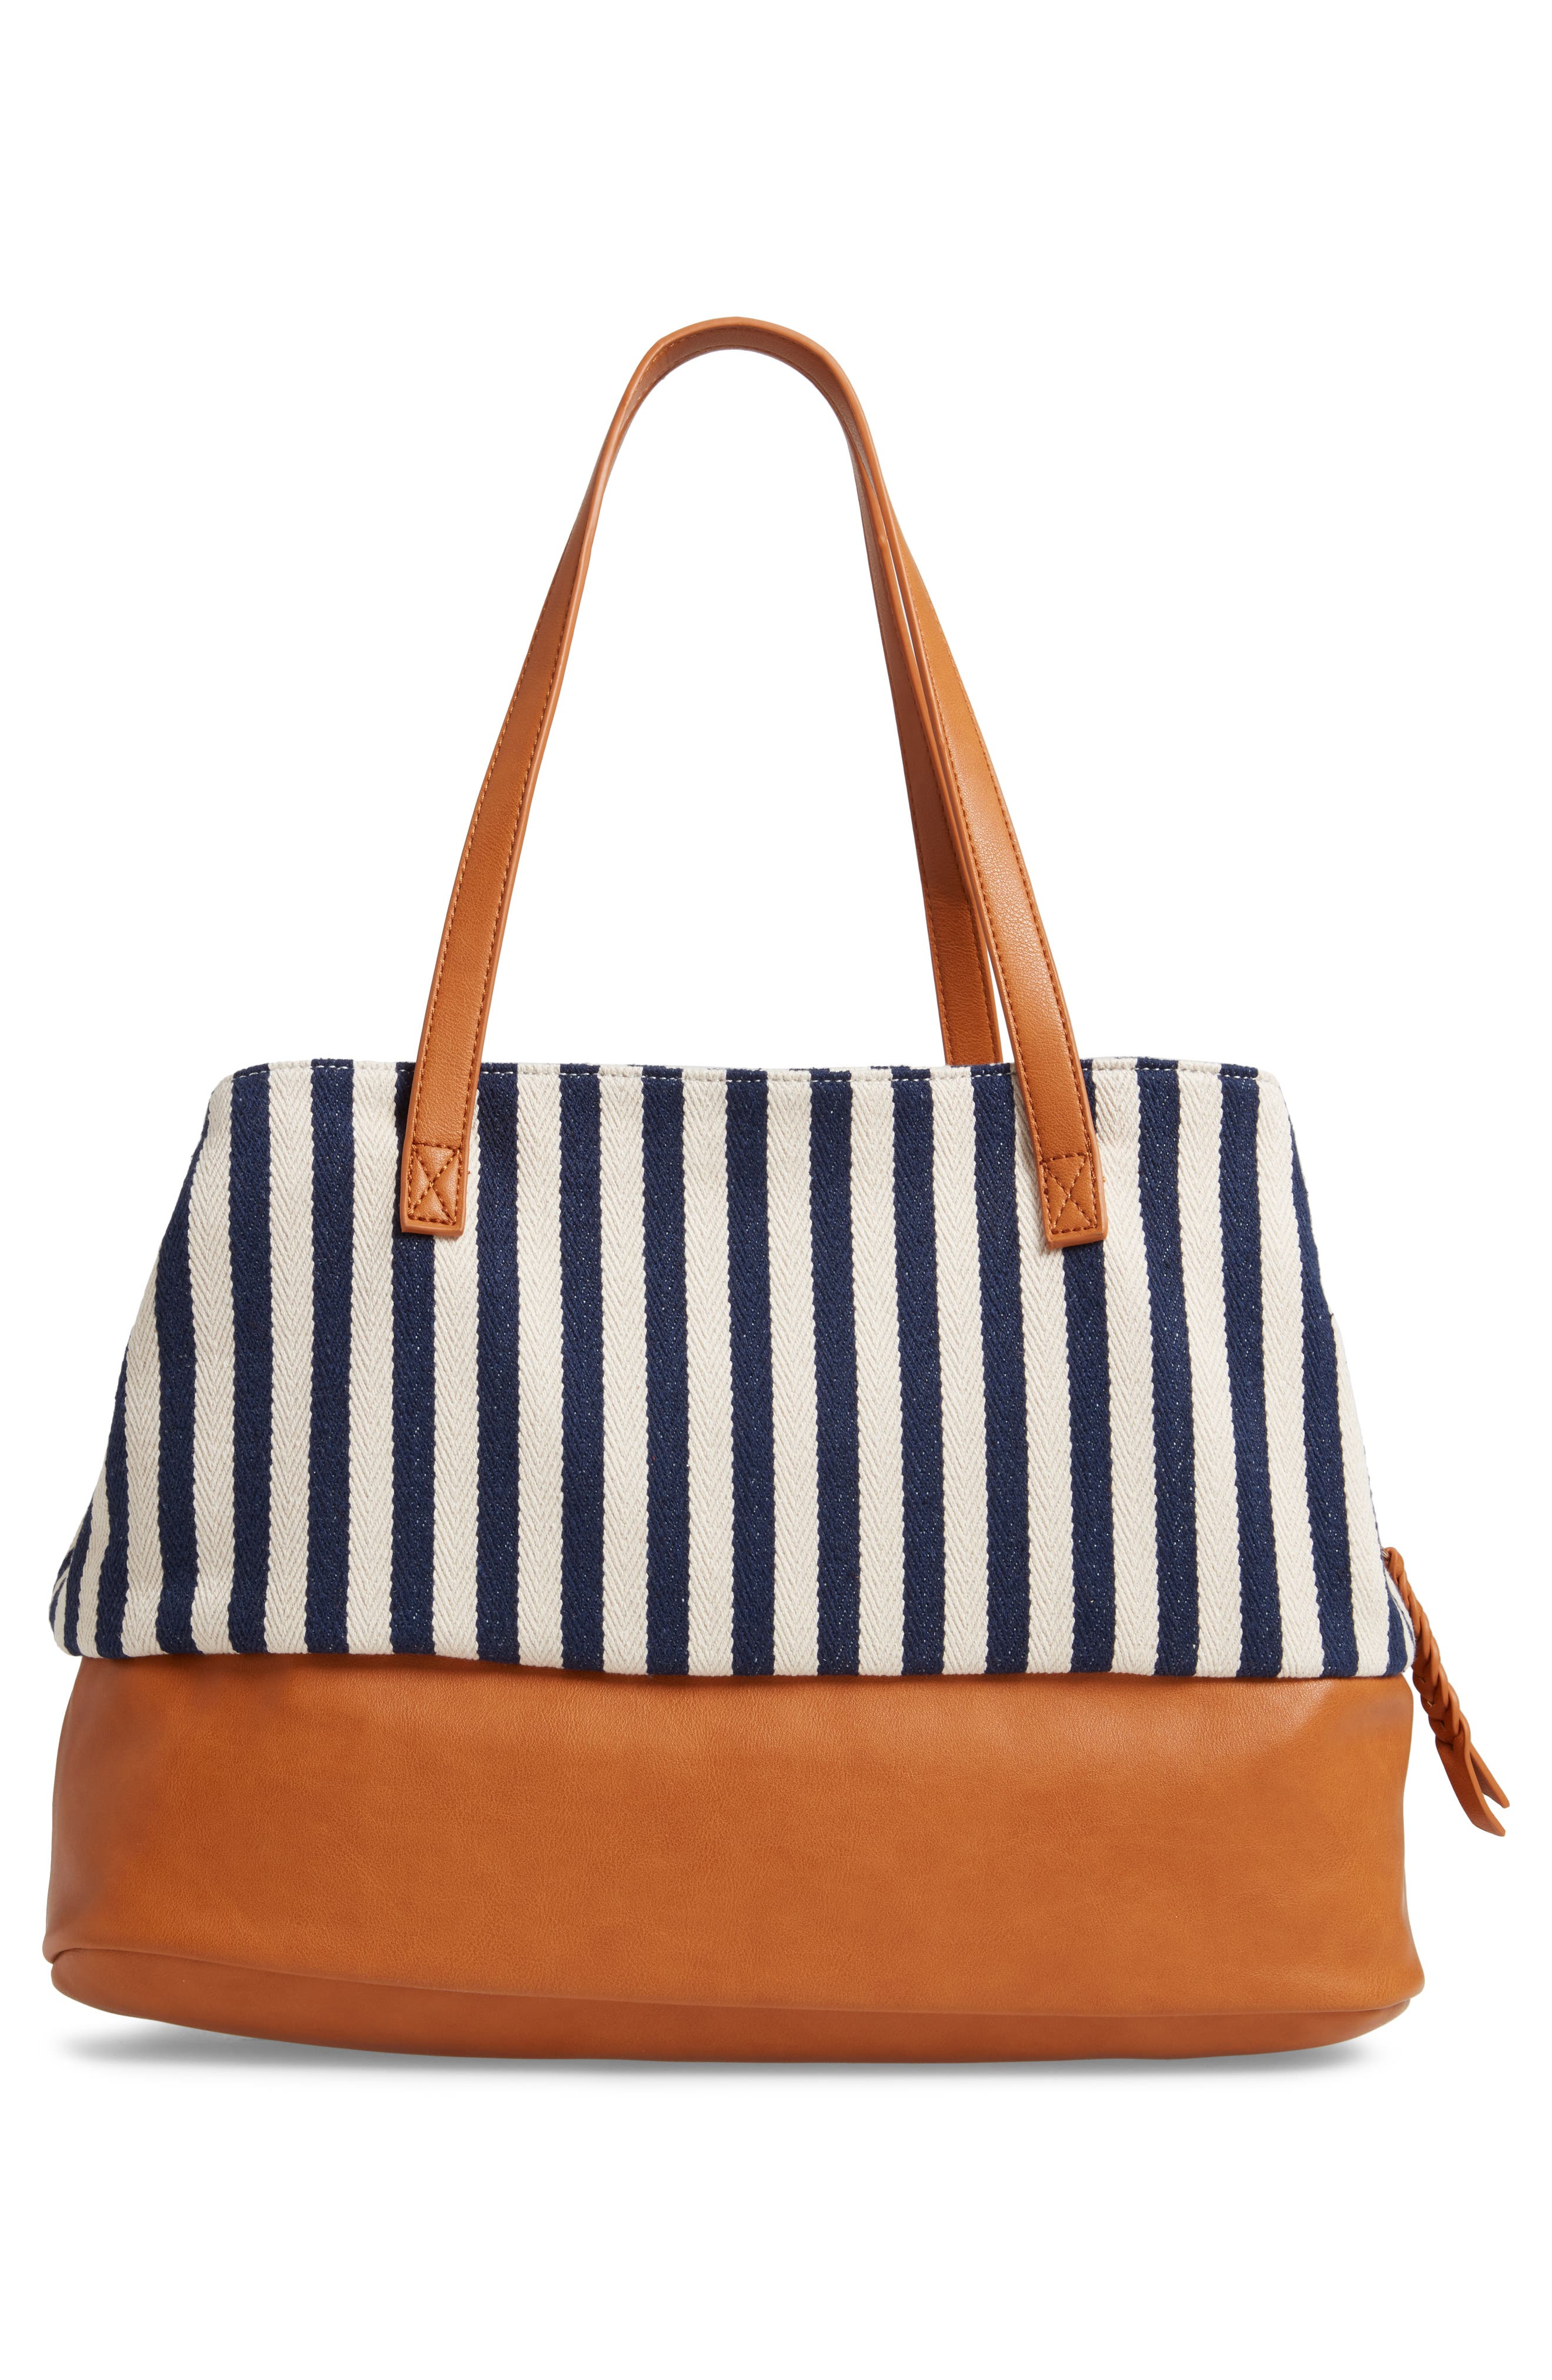 STREET LEVEL, Faux Leather Trim Weekend Bag with Shoe Base, Alternate thumbnail 4, color, 400